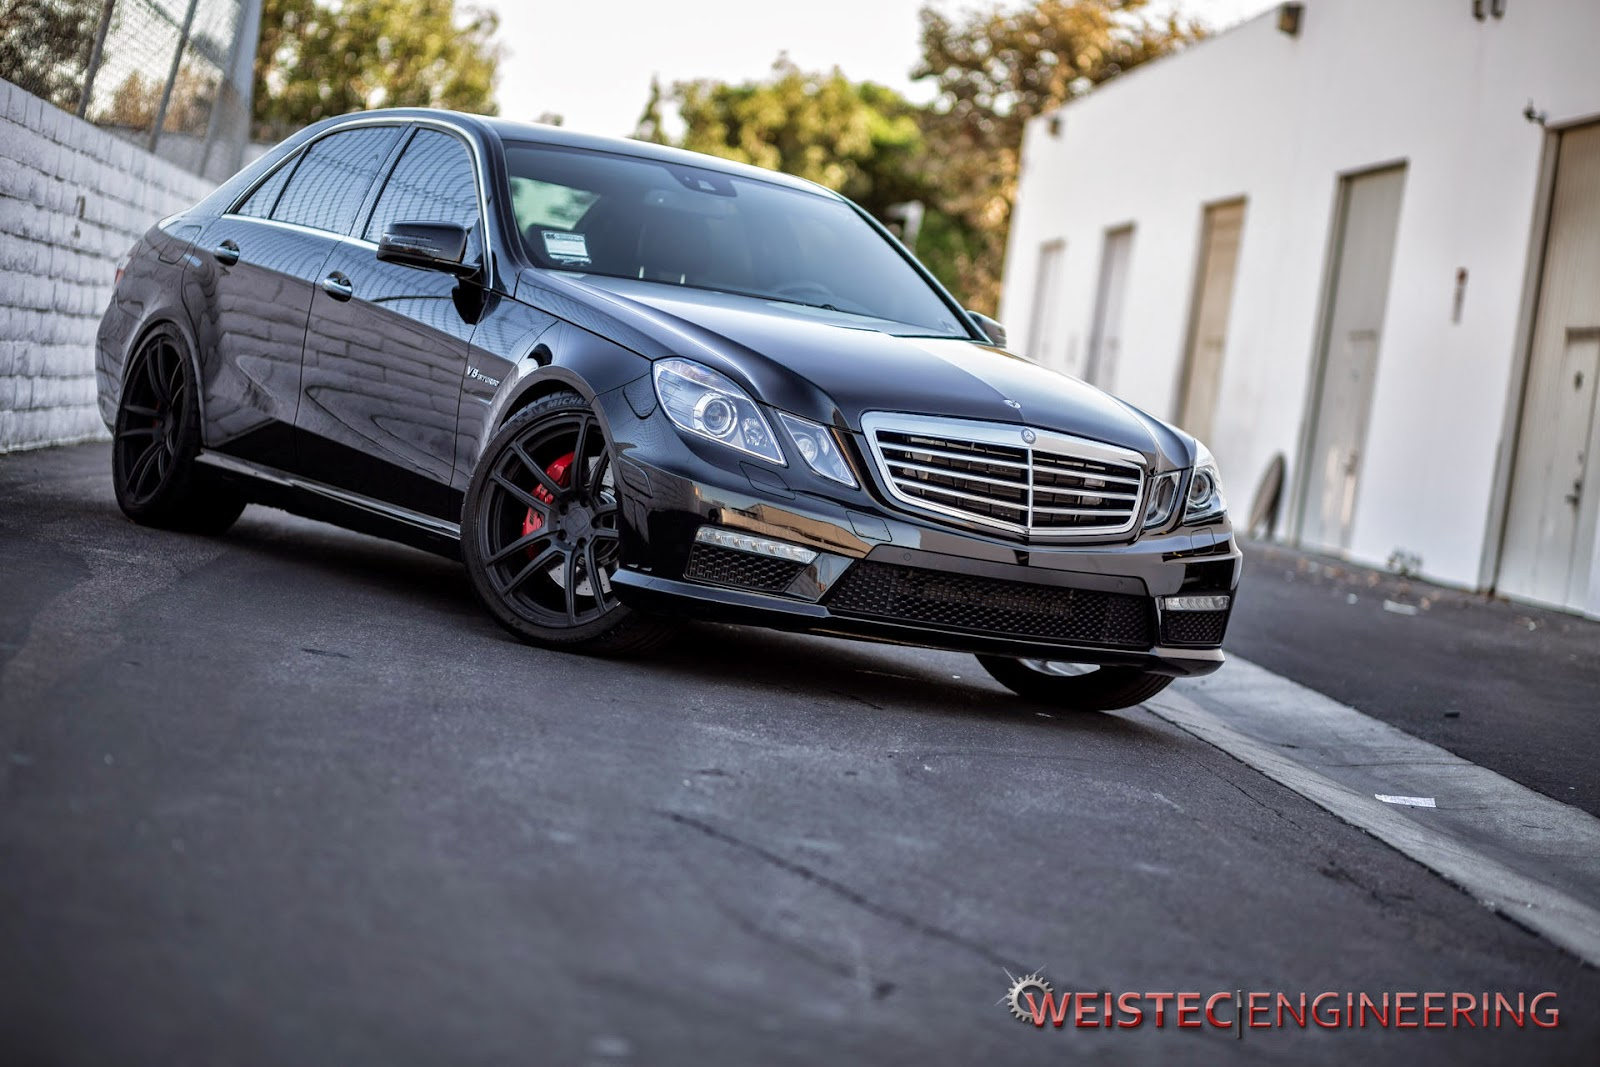 mercedes benz w212 e63 amg weistec on klassen wheels benztuning. Black Bedroom Furniture Sets. Home Design Ideas